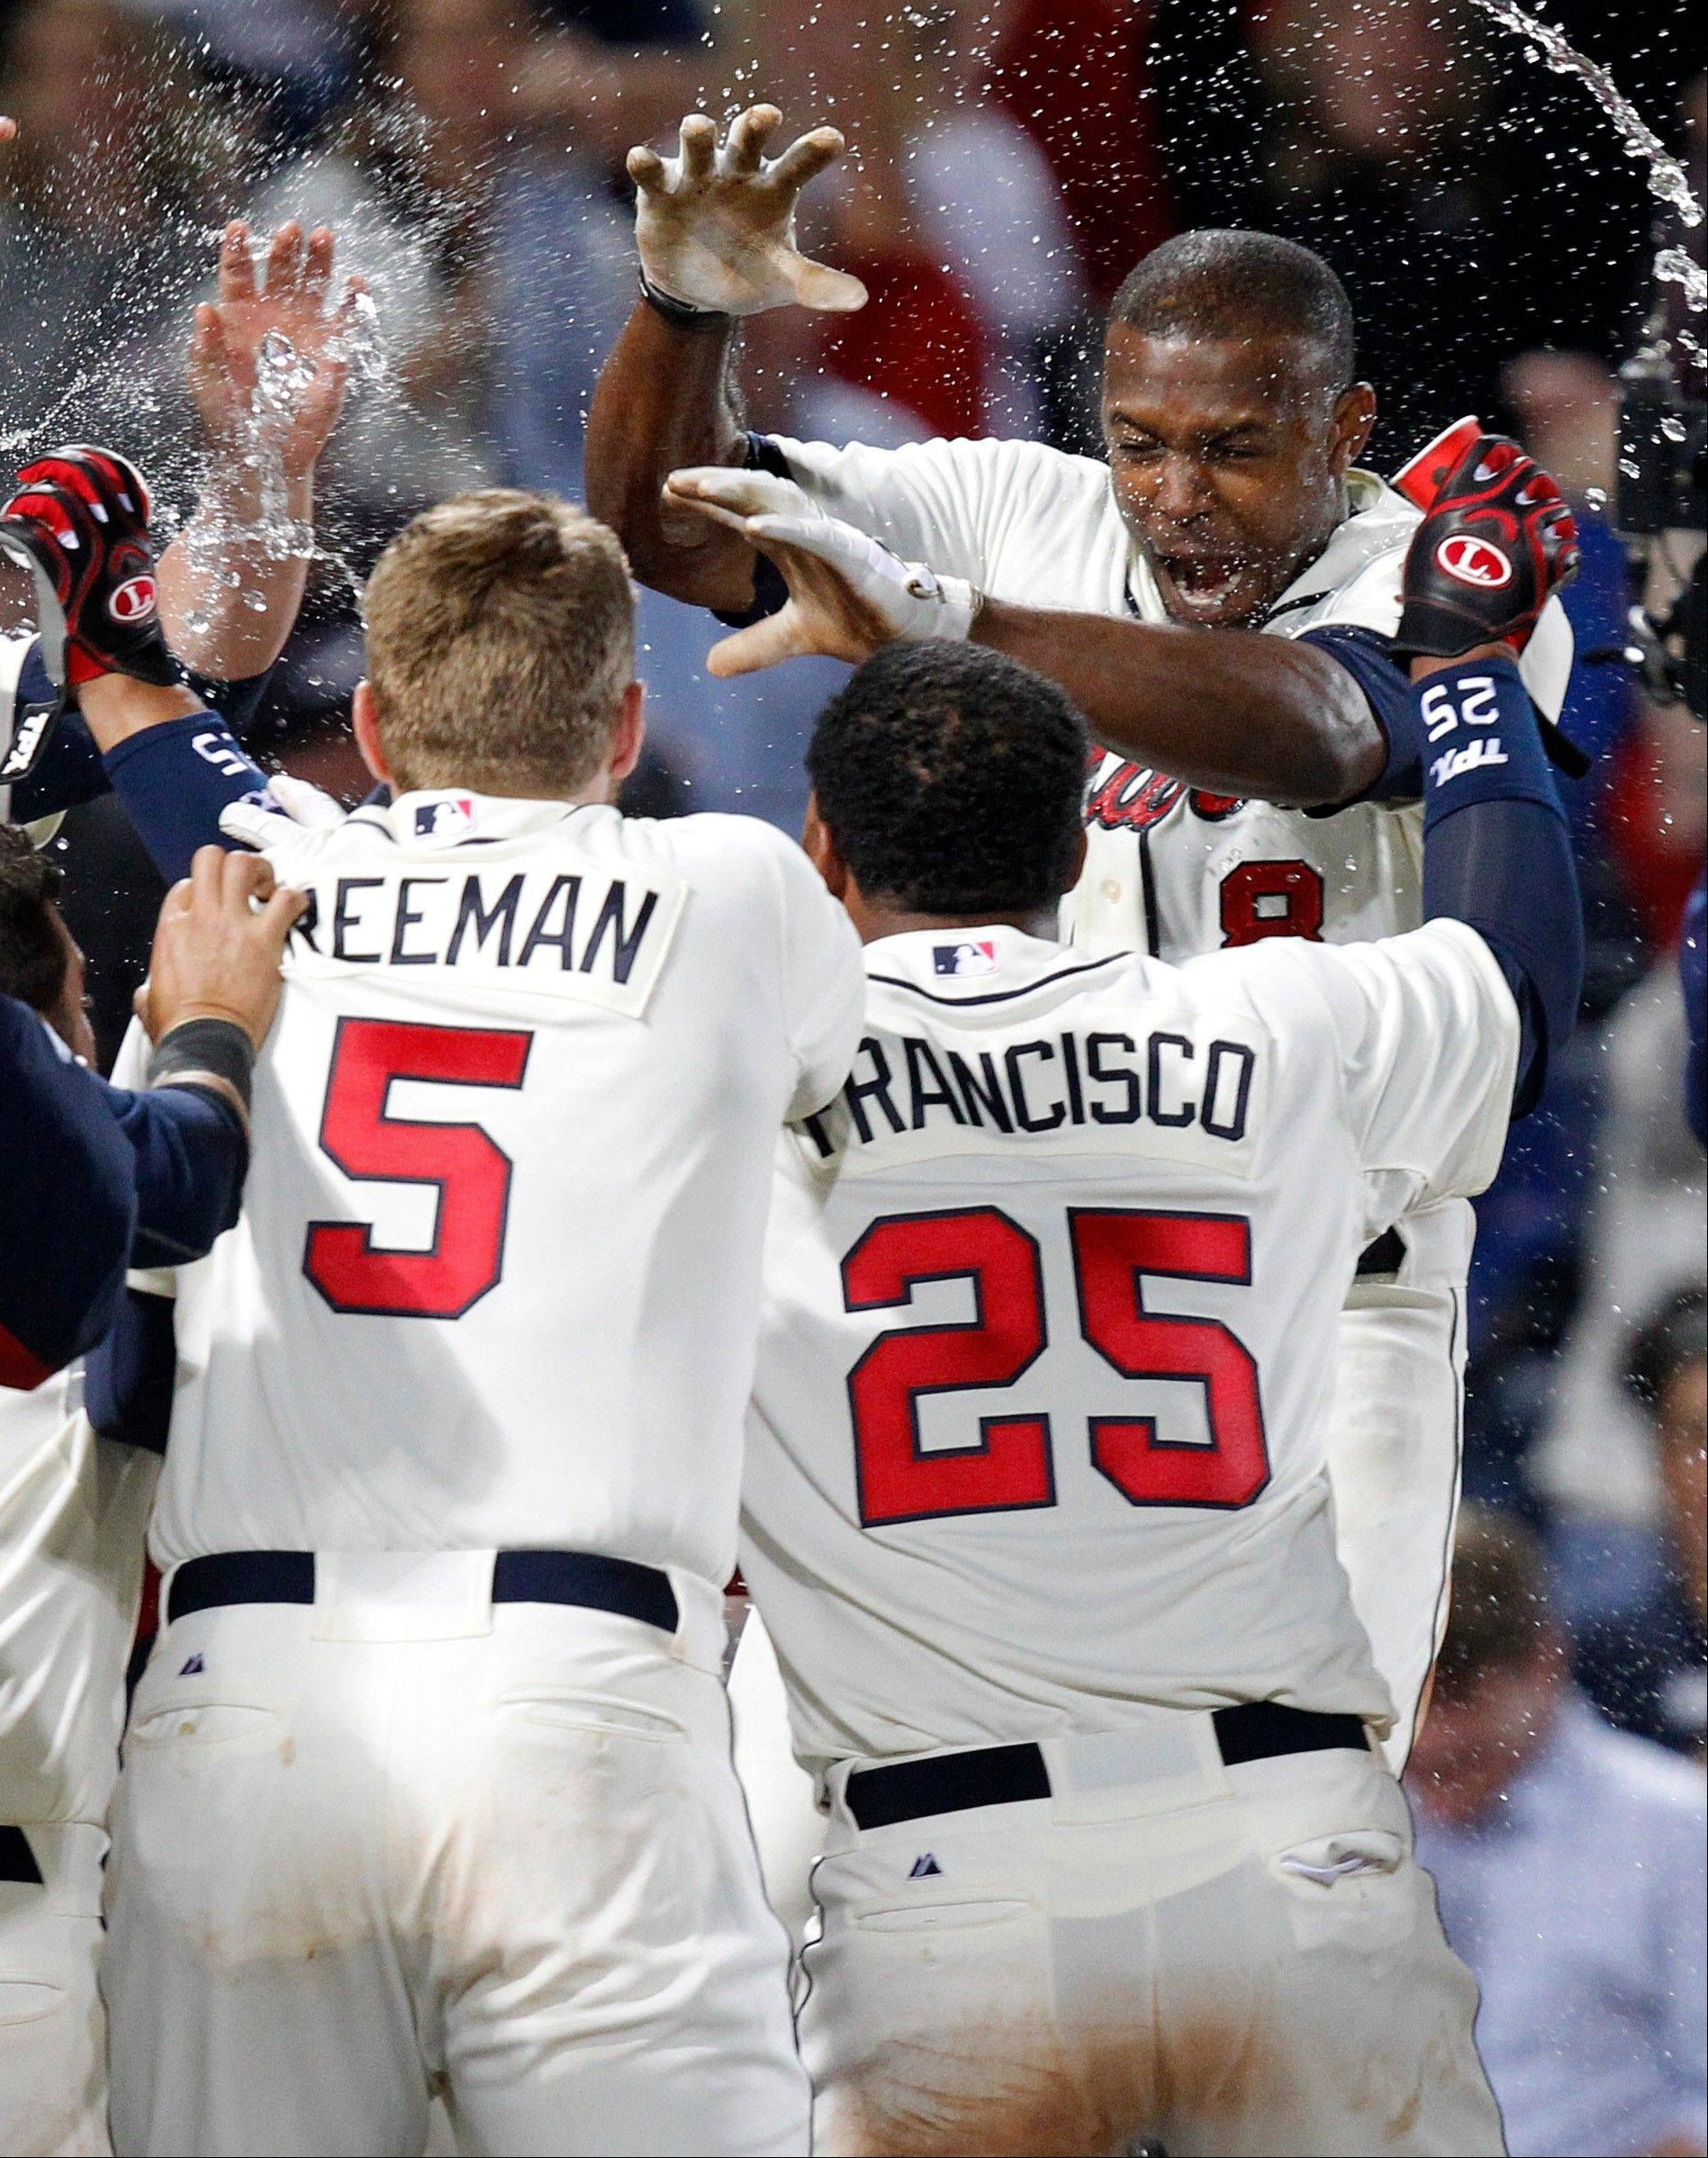 The Braves� Justin Upton, top right, is doused by teammates as he crosses home plate after hitting a walk-off home run in the ninth inning against Cubs reliever Carlos Marmol. Two batters earlier, Justin�s brother B.J. had tied the game with a home run.